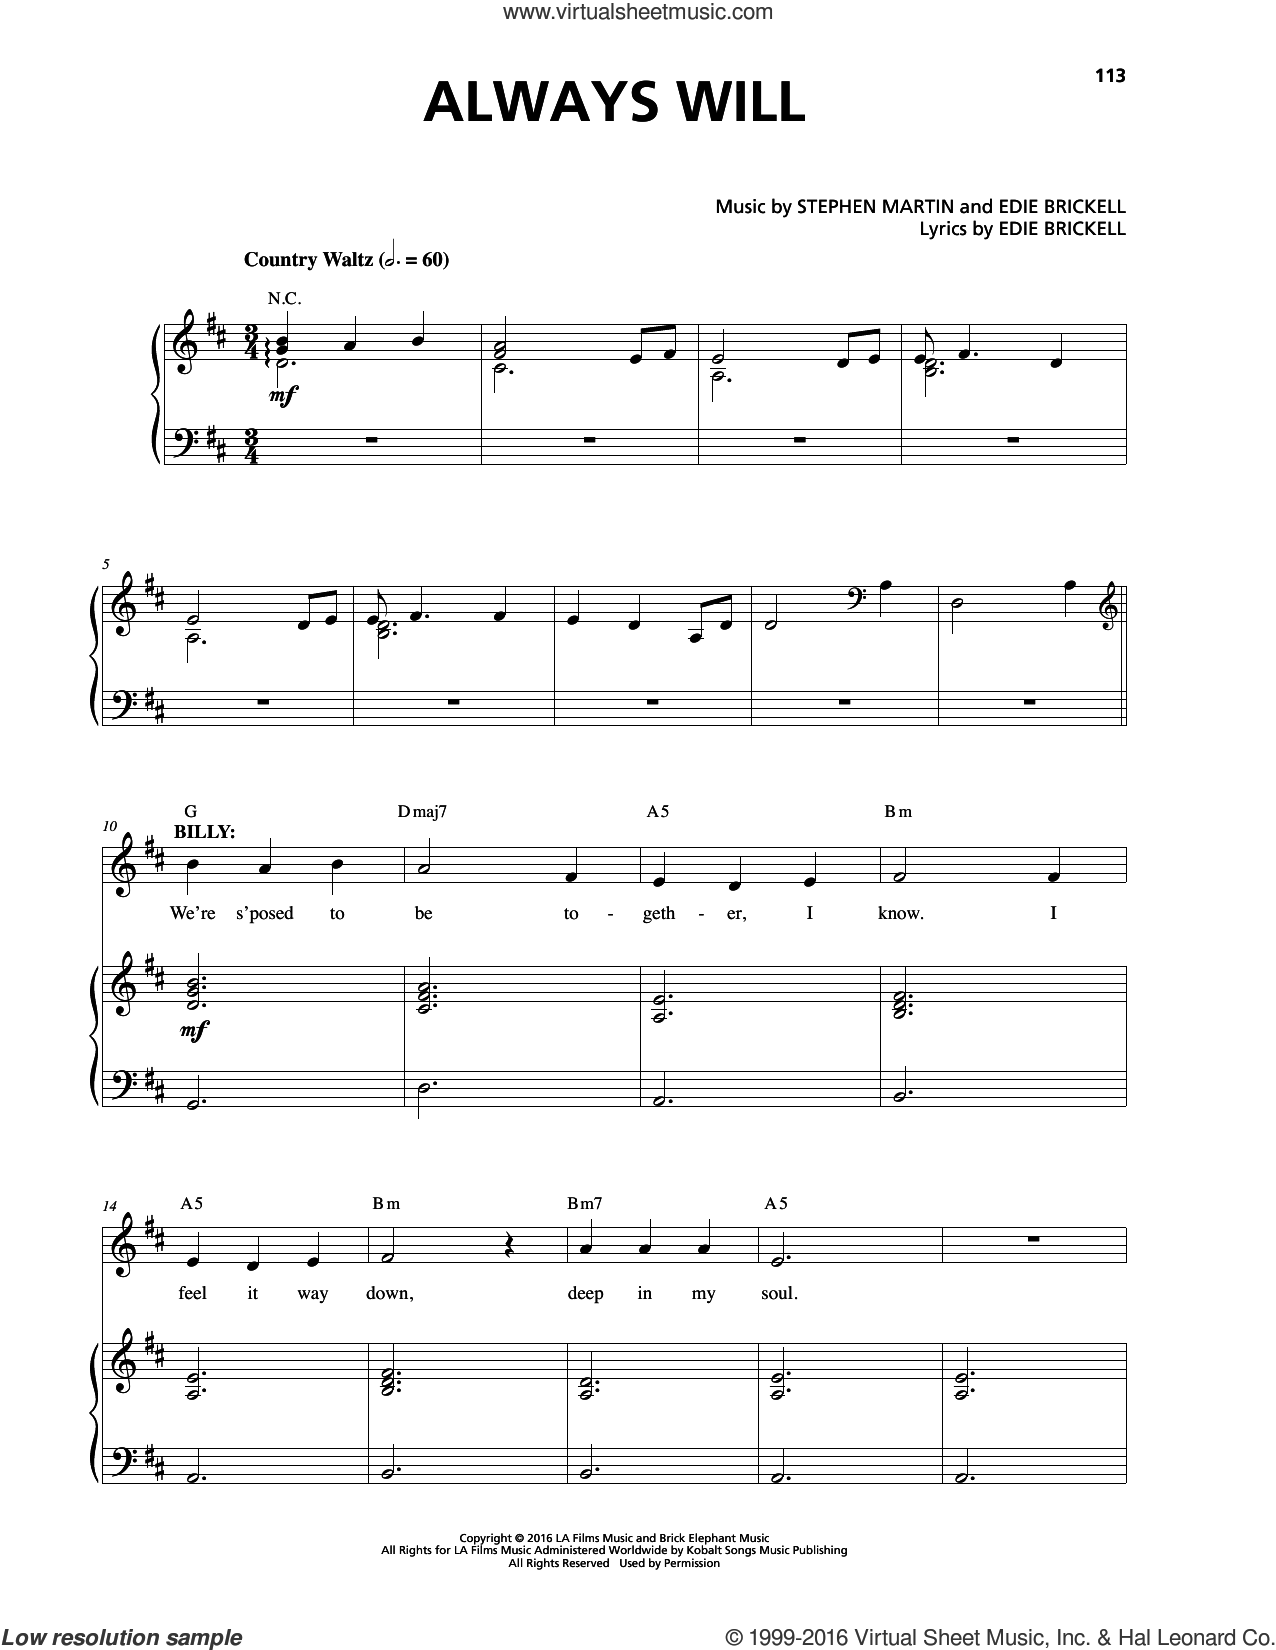 Always Will sheet music for voice and piano by Stephen Martin. Score Image Preview.